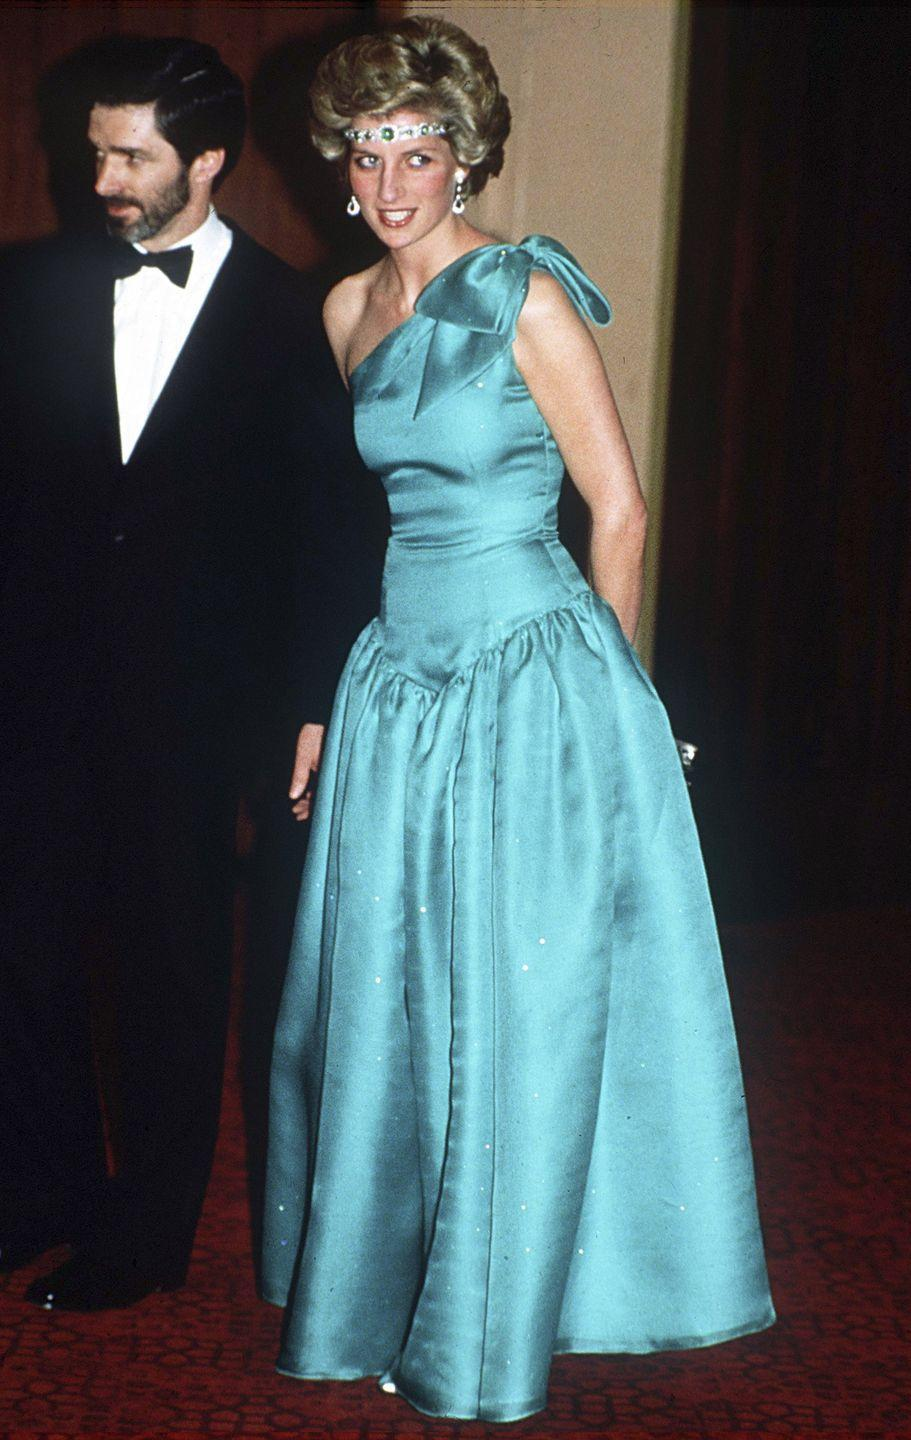 """<p>Princess Diana wore an asymmetrical satin ball gown in Melbourne, Australia. The royal topped the teal dress off with earrings and <a href=""""https://royalwatcherblog.com/2017/08/20/queen-marys-art-deco-emerald-choker/"""" rel=""""nofollow noopener"""" target=""""_blank"""" data-ylk=""""slk:Queen Mary's art deco emerald and diamond choker"""" class=""""link rapid-noclick-resp"""">Queen Mary's art deco emerald and diamond choker</a>, which she wore as a headband. </p>"""